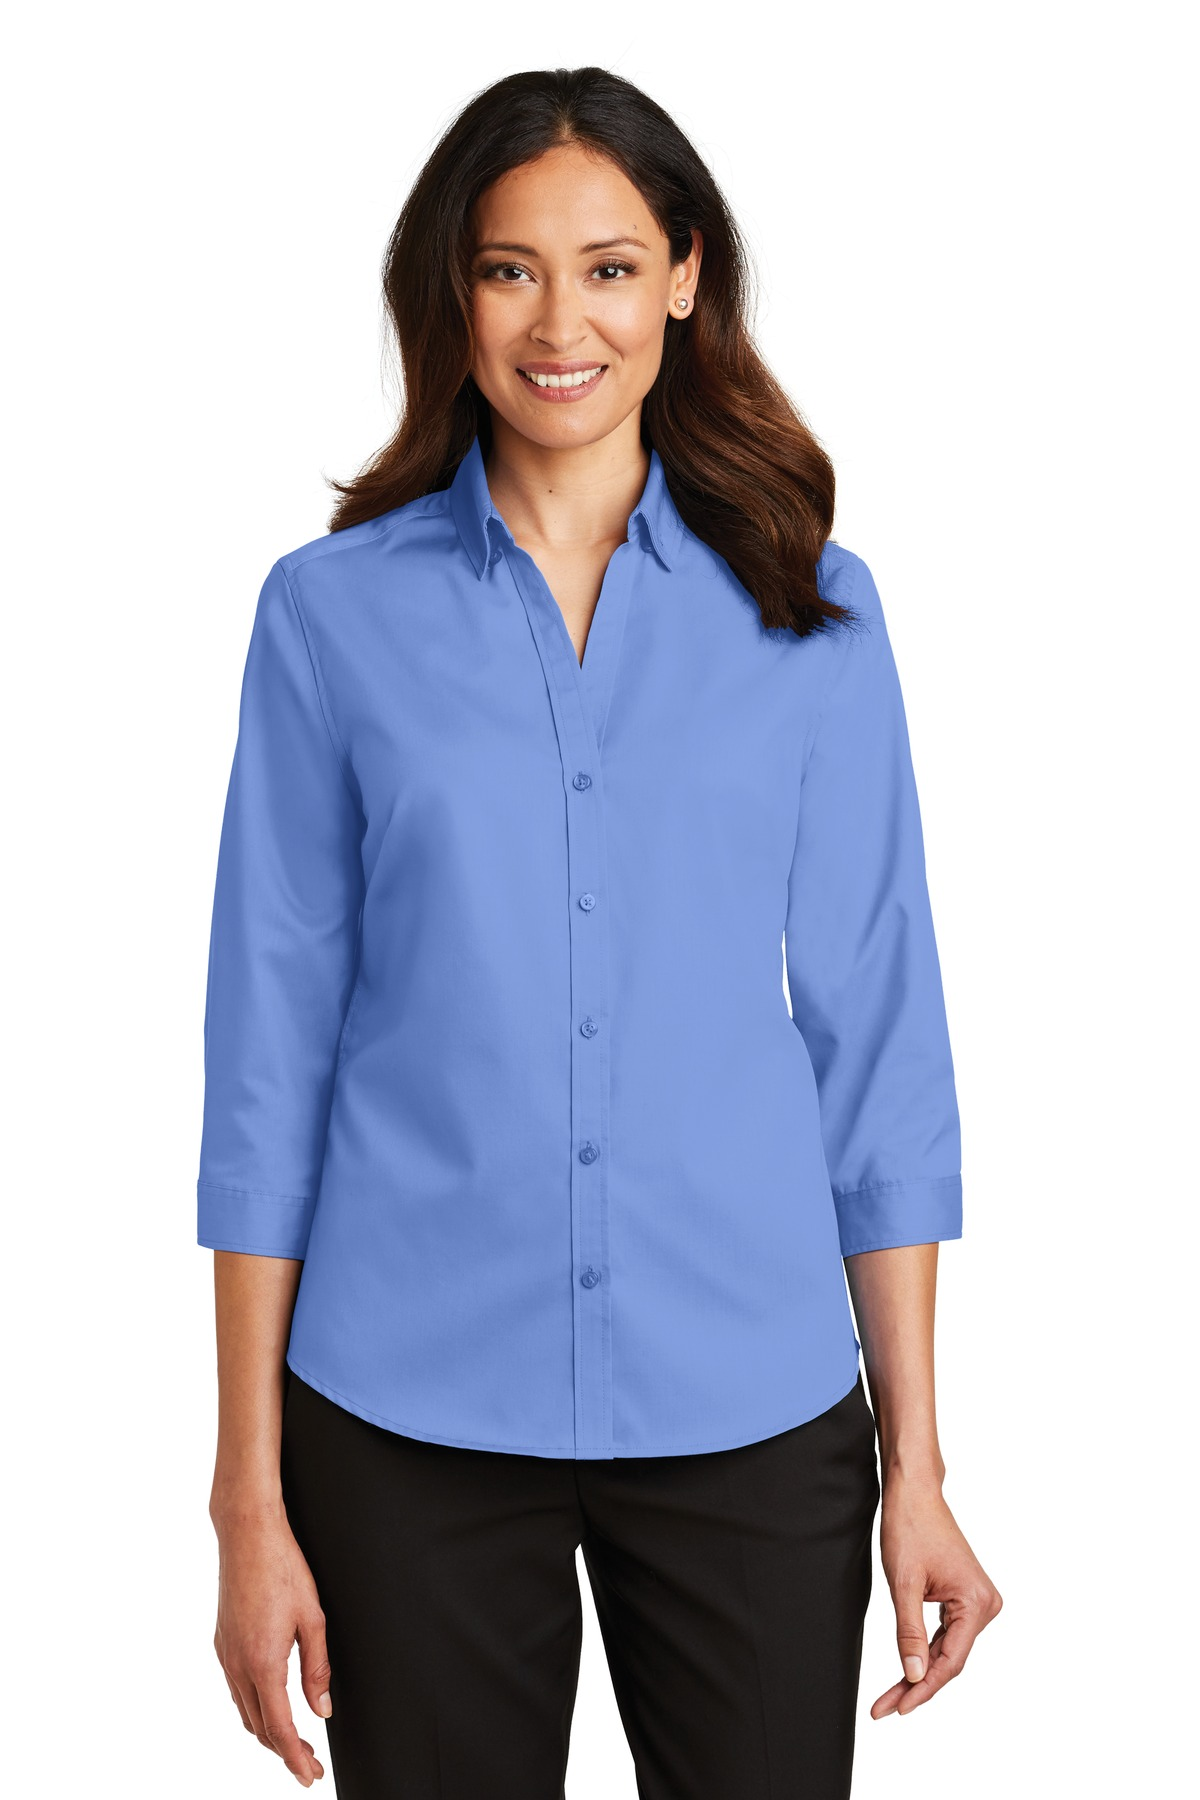 Port Authority ®  Ladies 3/4-Sleeve SuperPro ™  Twill Shirt. L665 - Ultramarine Blue